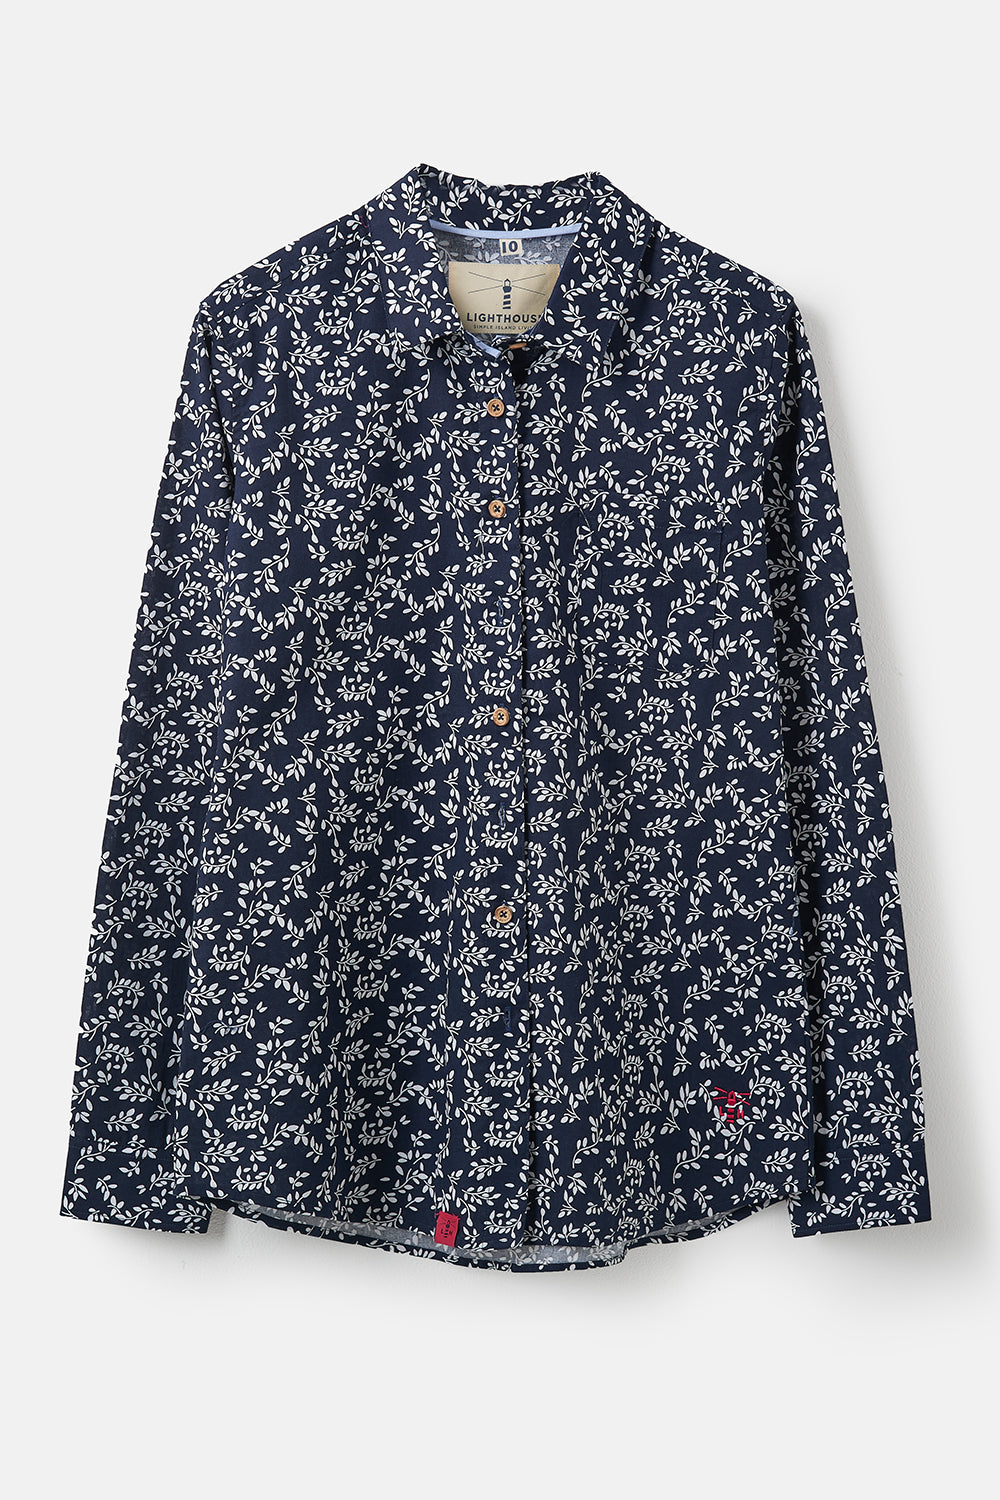 Lighthouse Ocean - Womens Button Up Shirt - Night Sky Floral